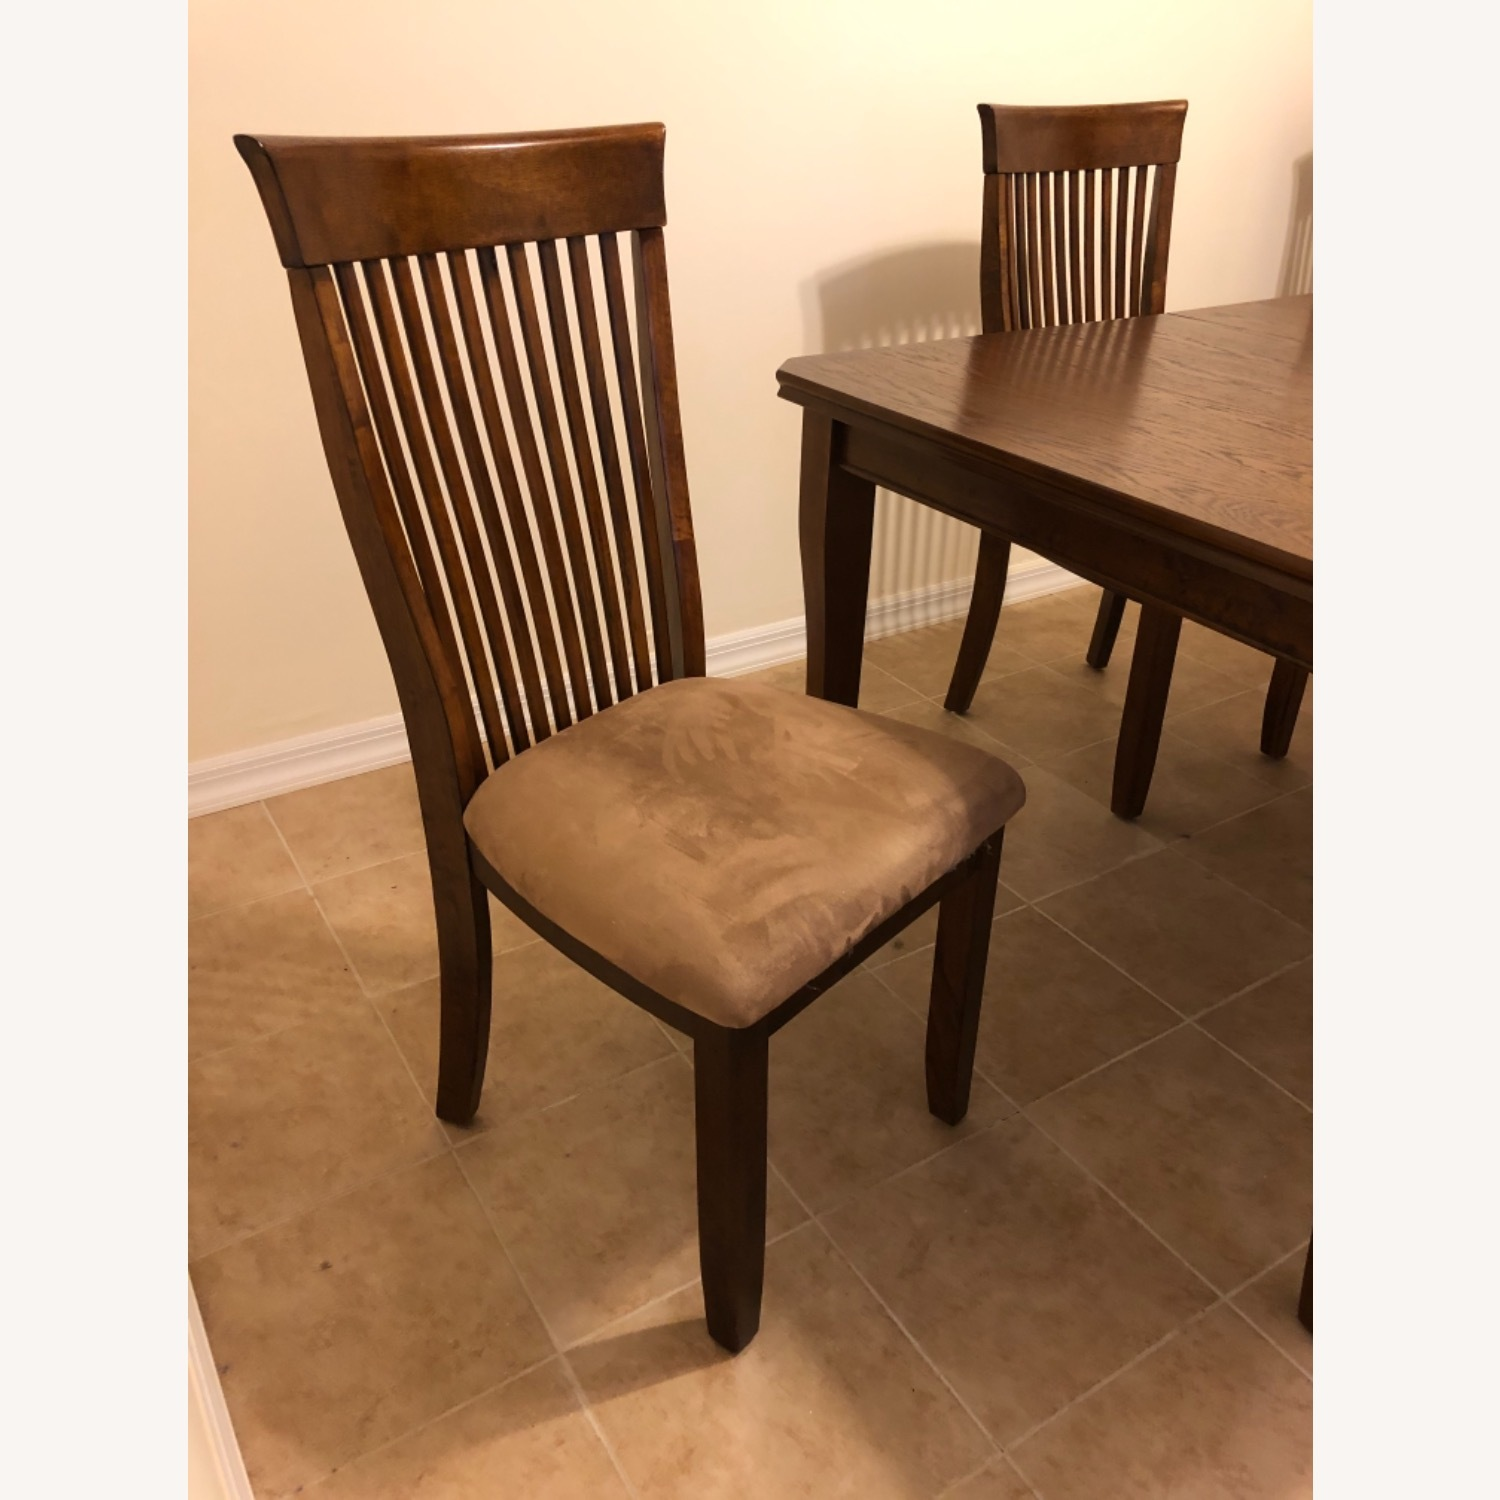 Steve Silver Dining Chairs - image-1